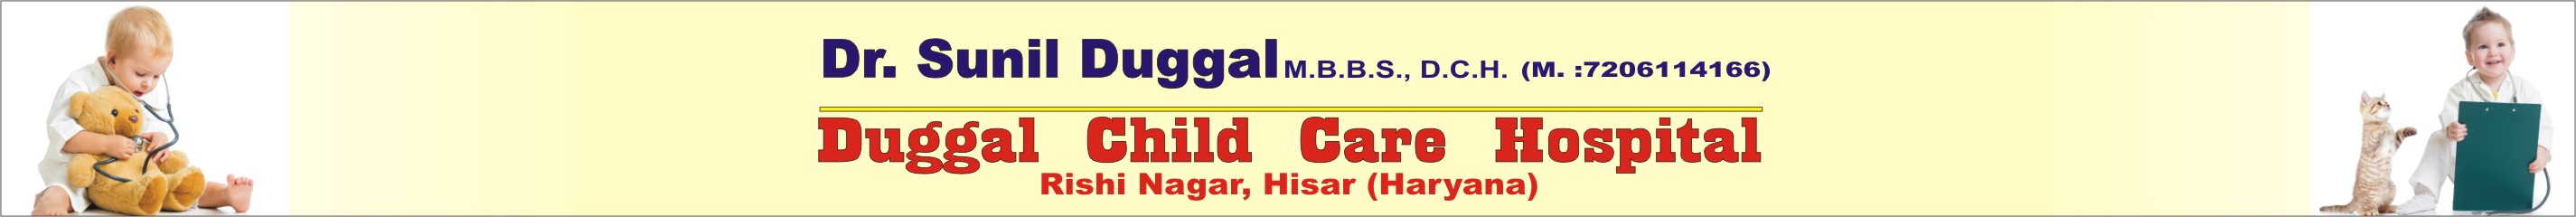 DUGGAL CHILD CARE HOSPITAL